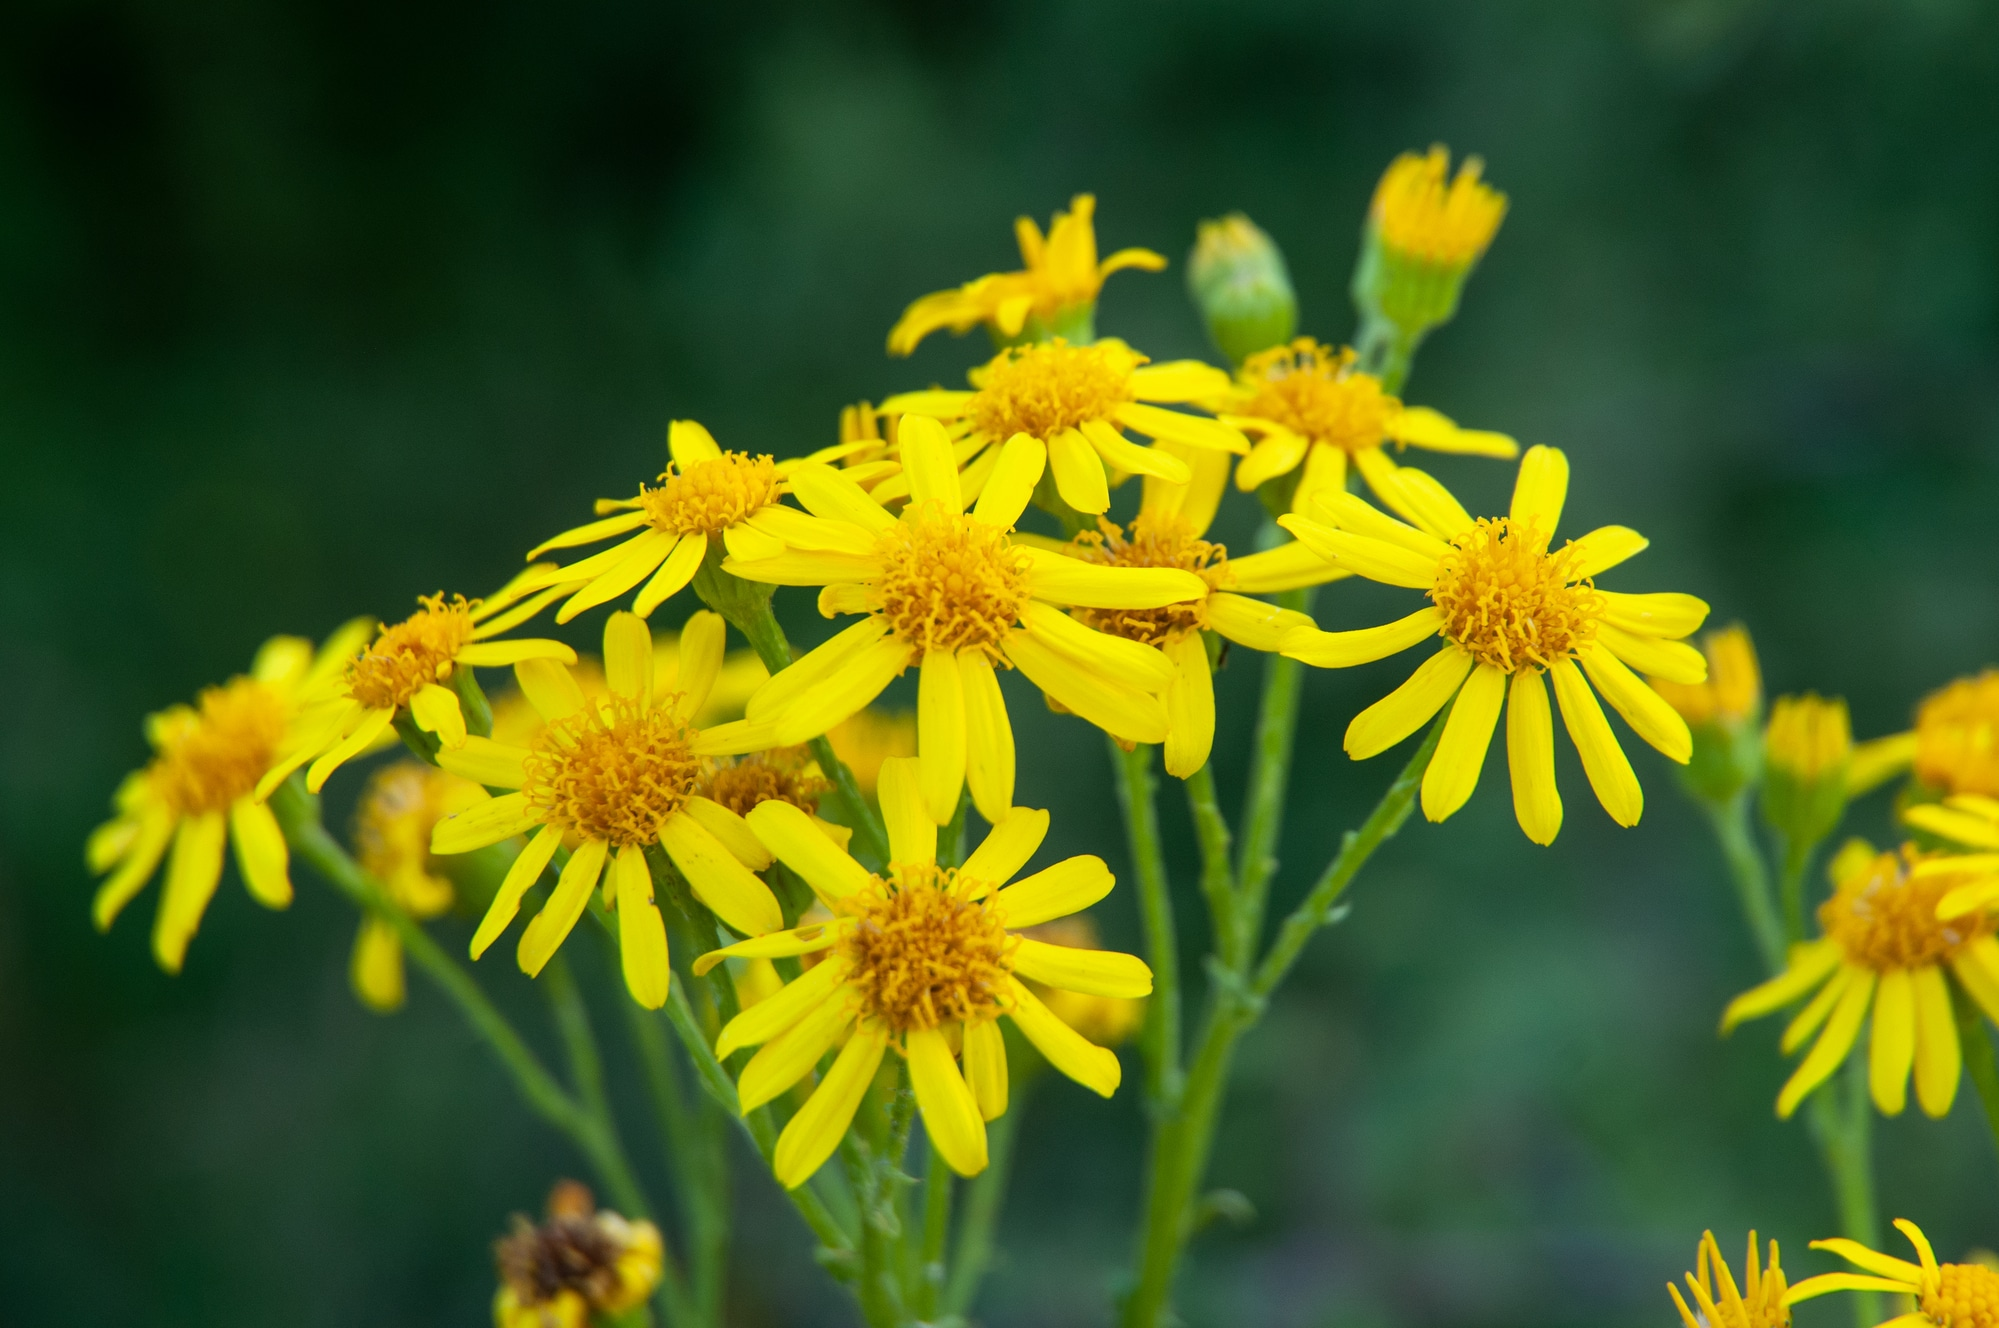 Flower cluster of a common ragwort or stinking willie